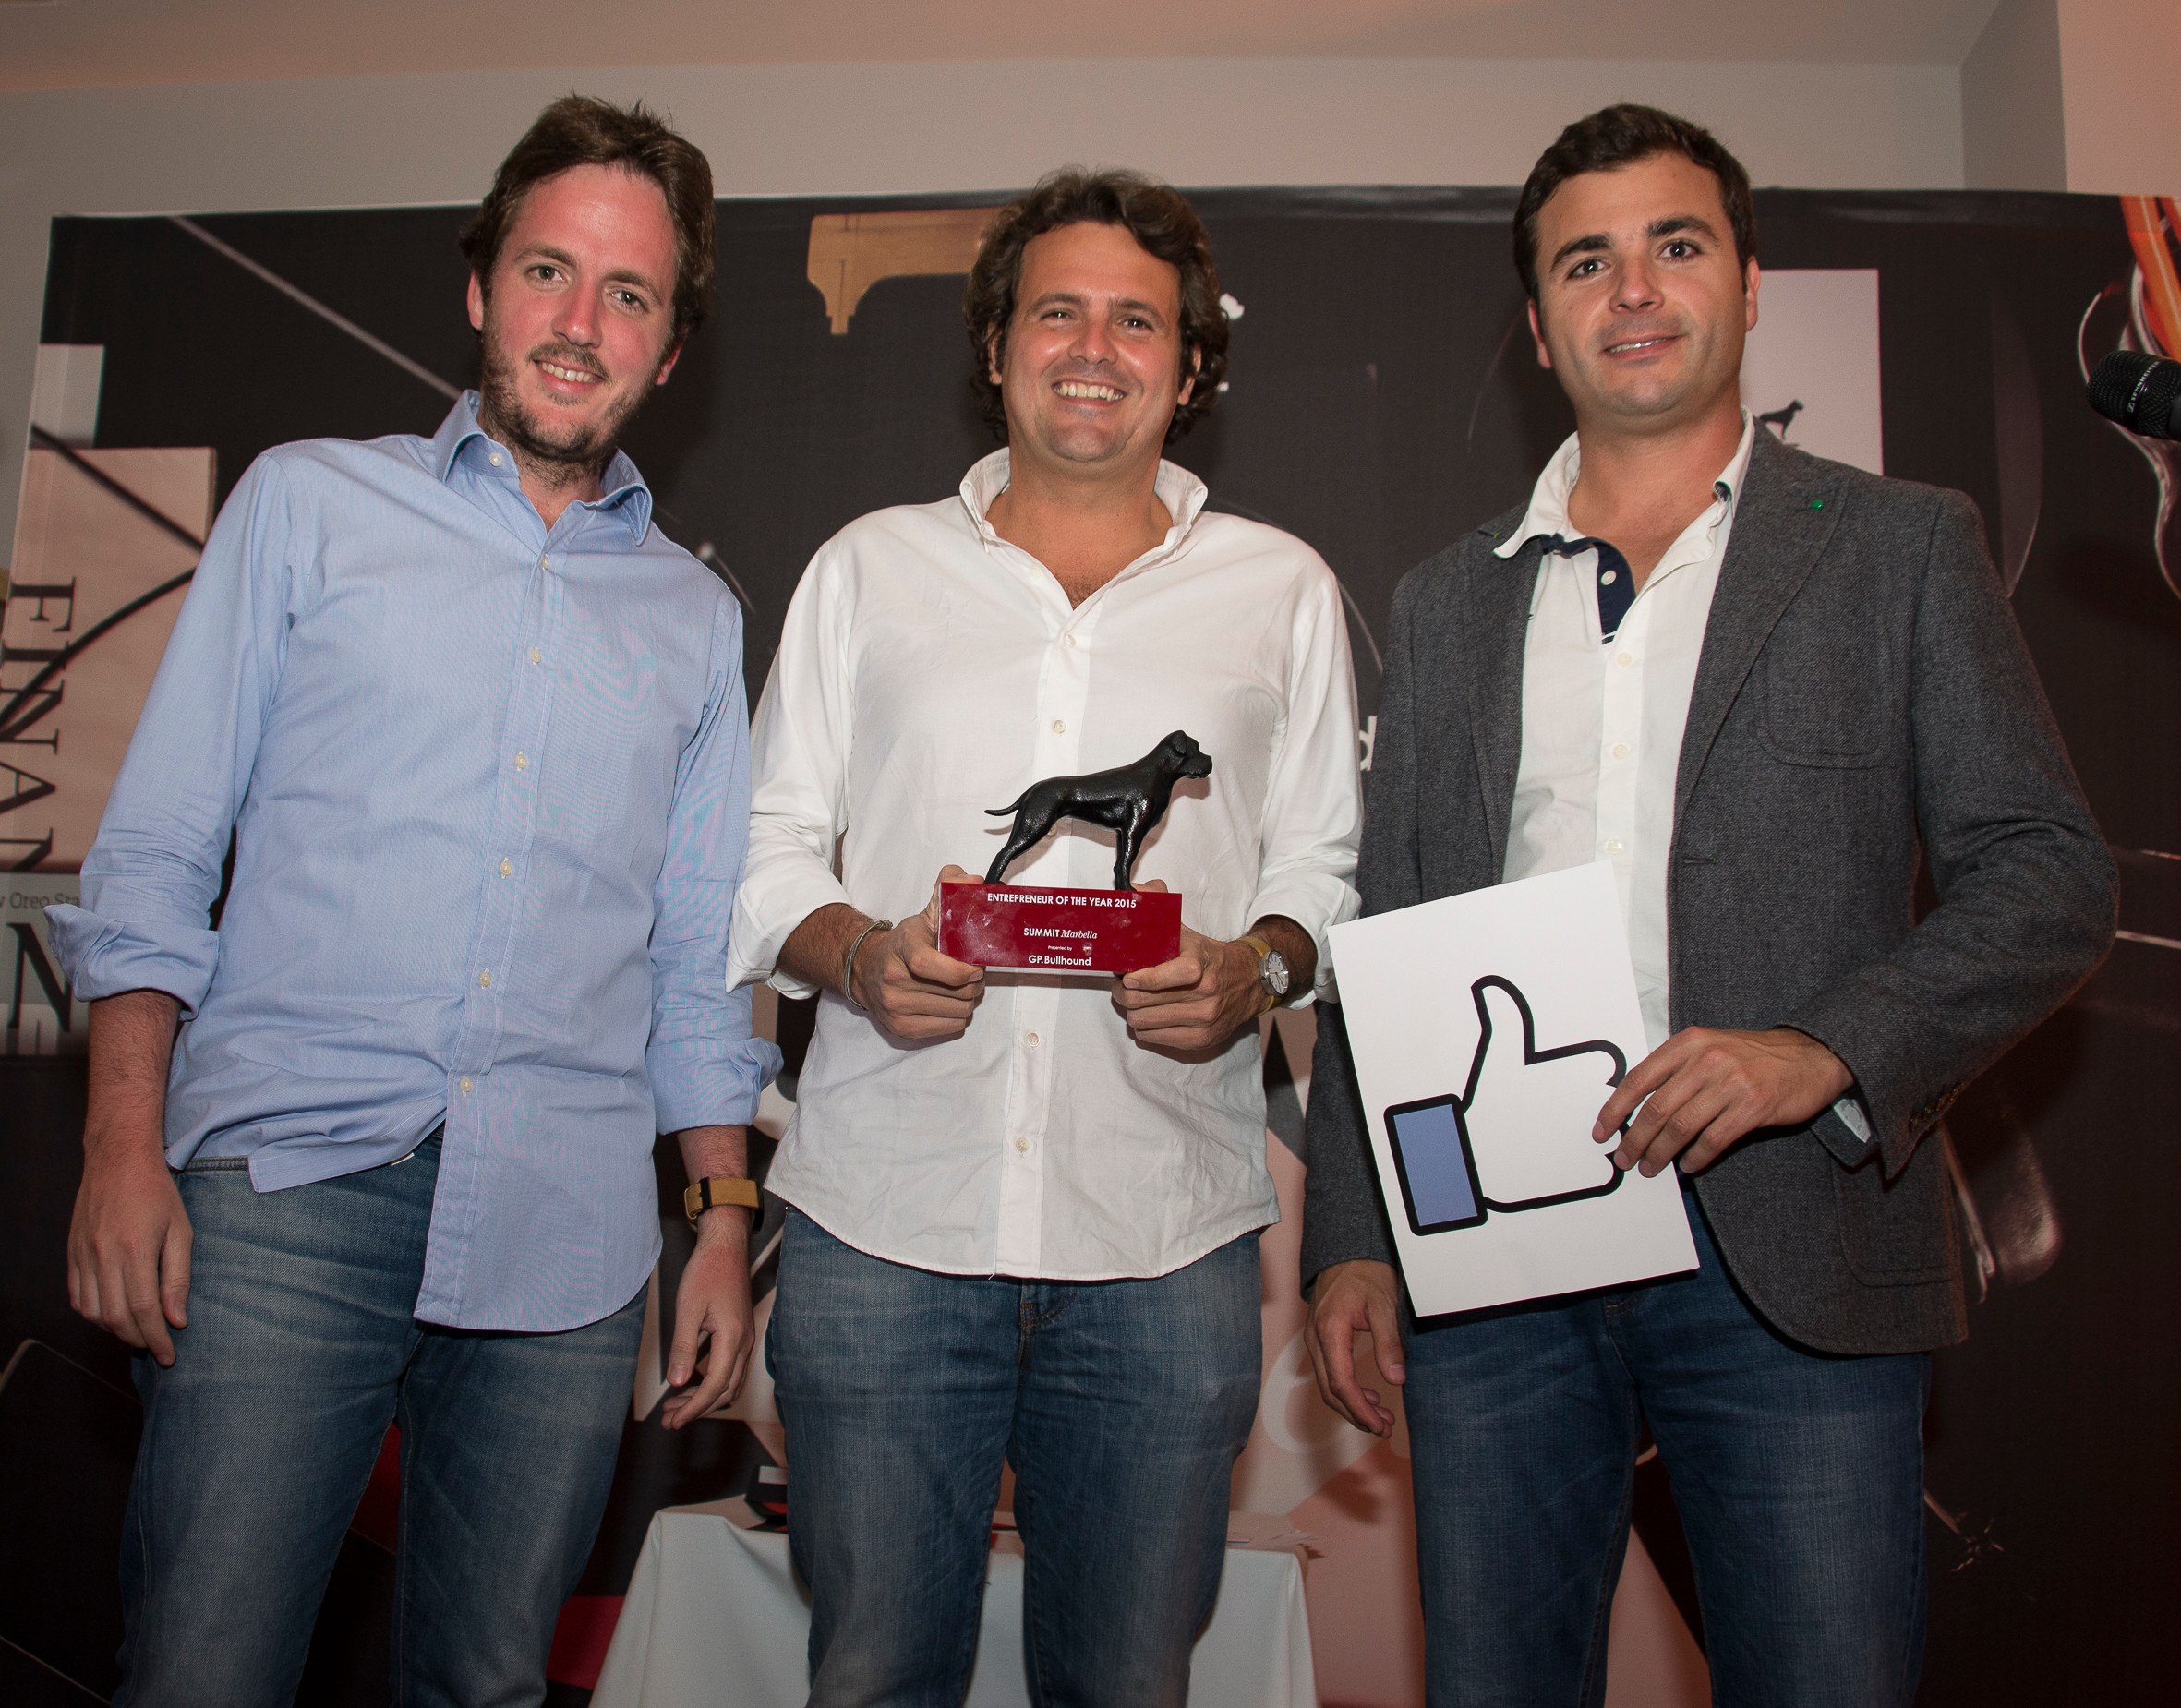 GP Bullhound Summit Awards - Entrepreneurs of the Year 2015 - Jobandtalent